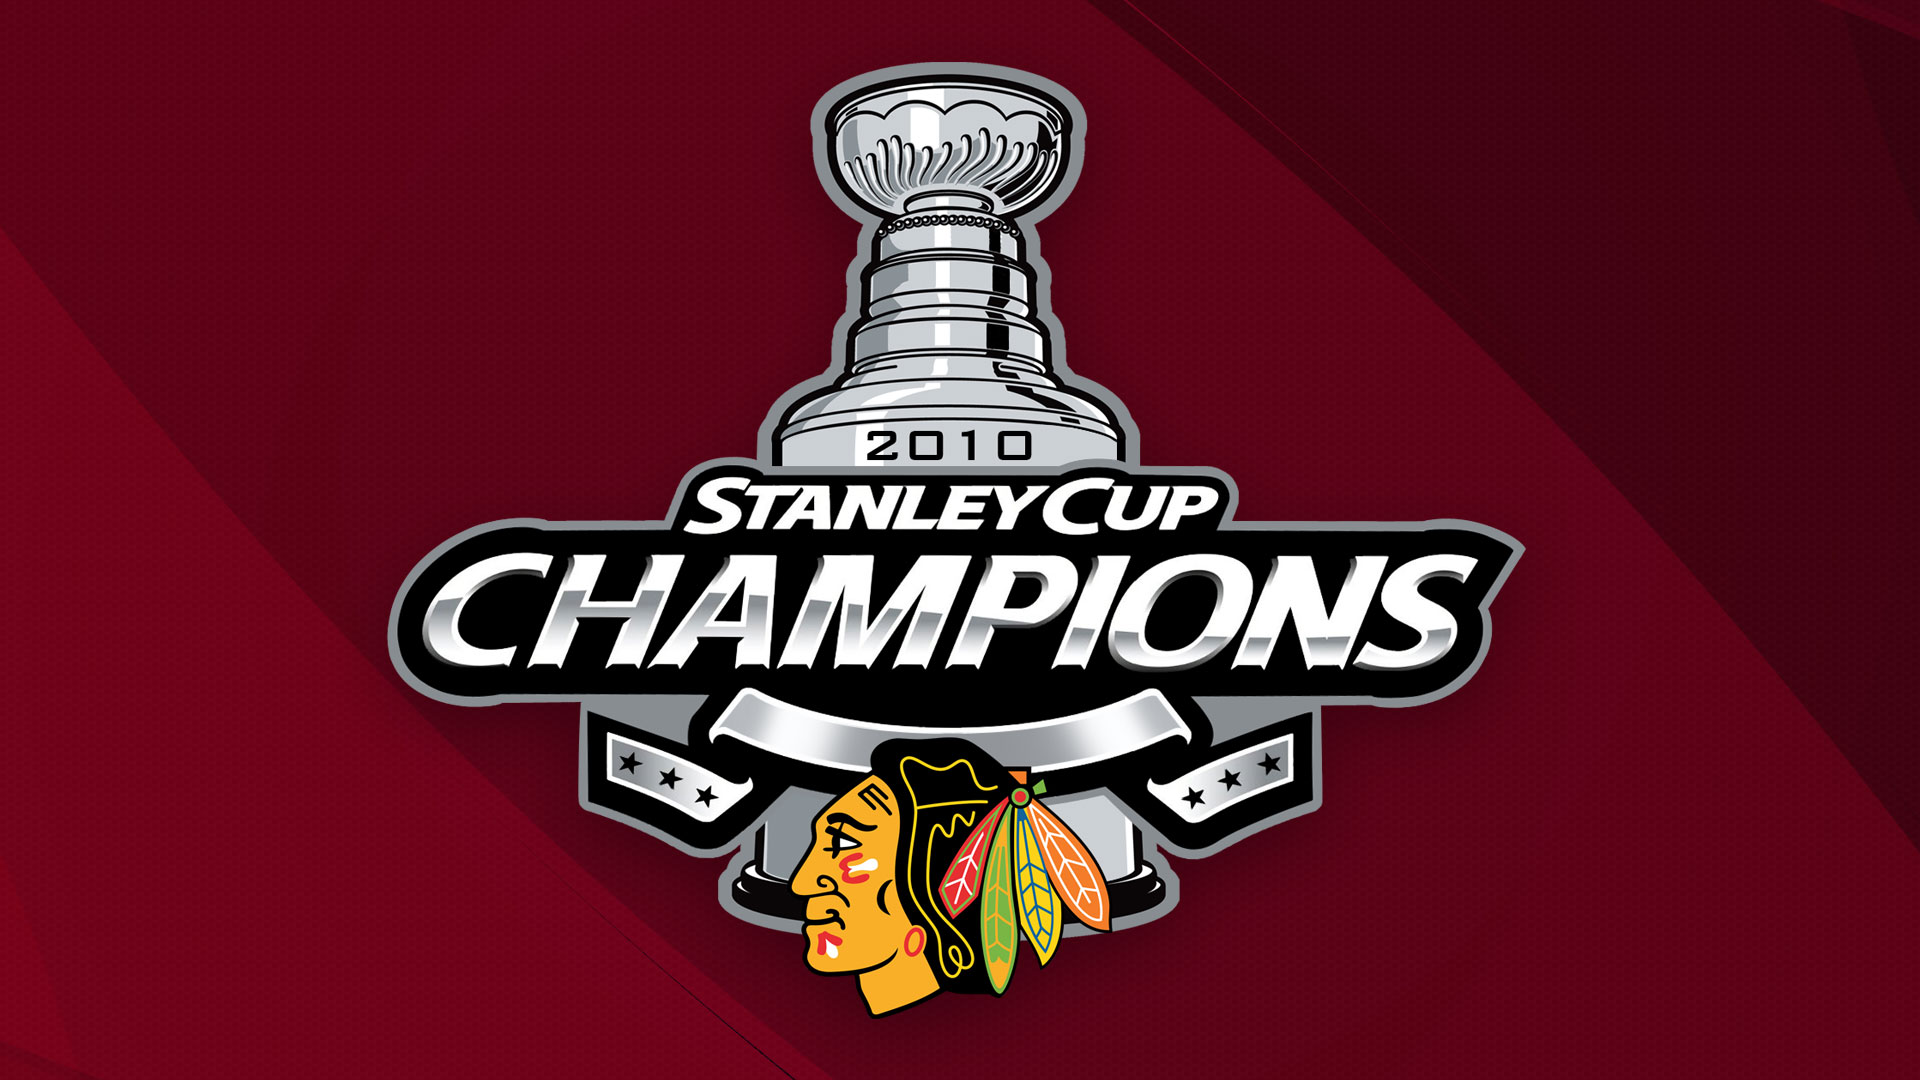 Blackhawks-Stanley-cup-wallpaper-wp3803248